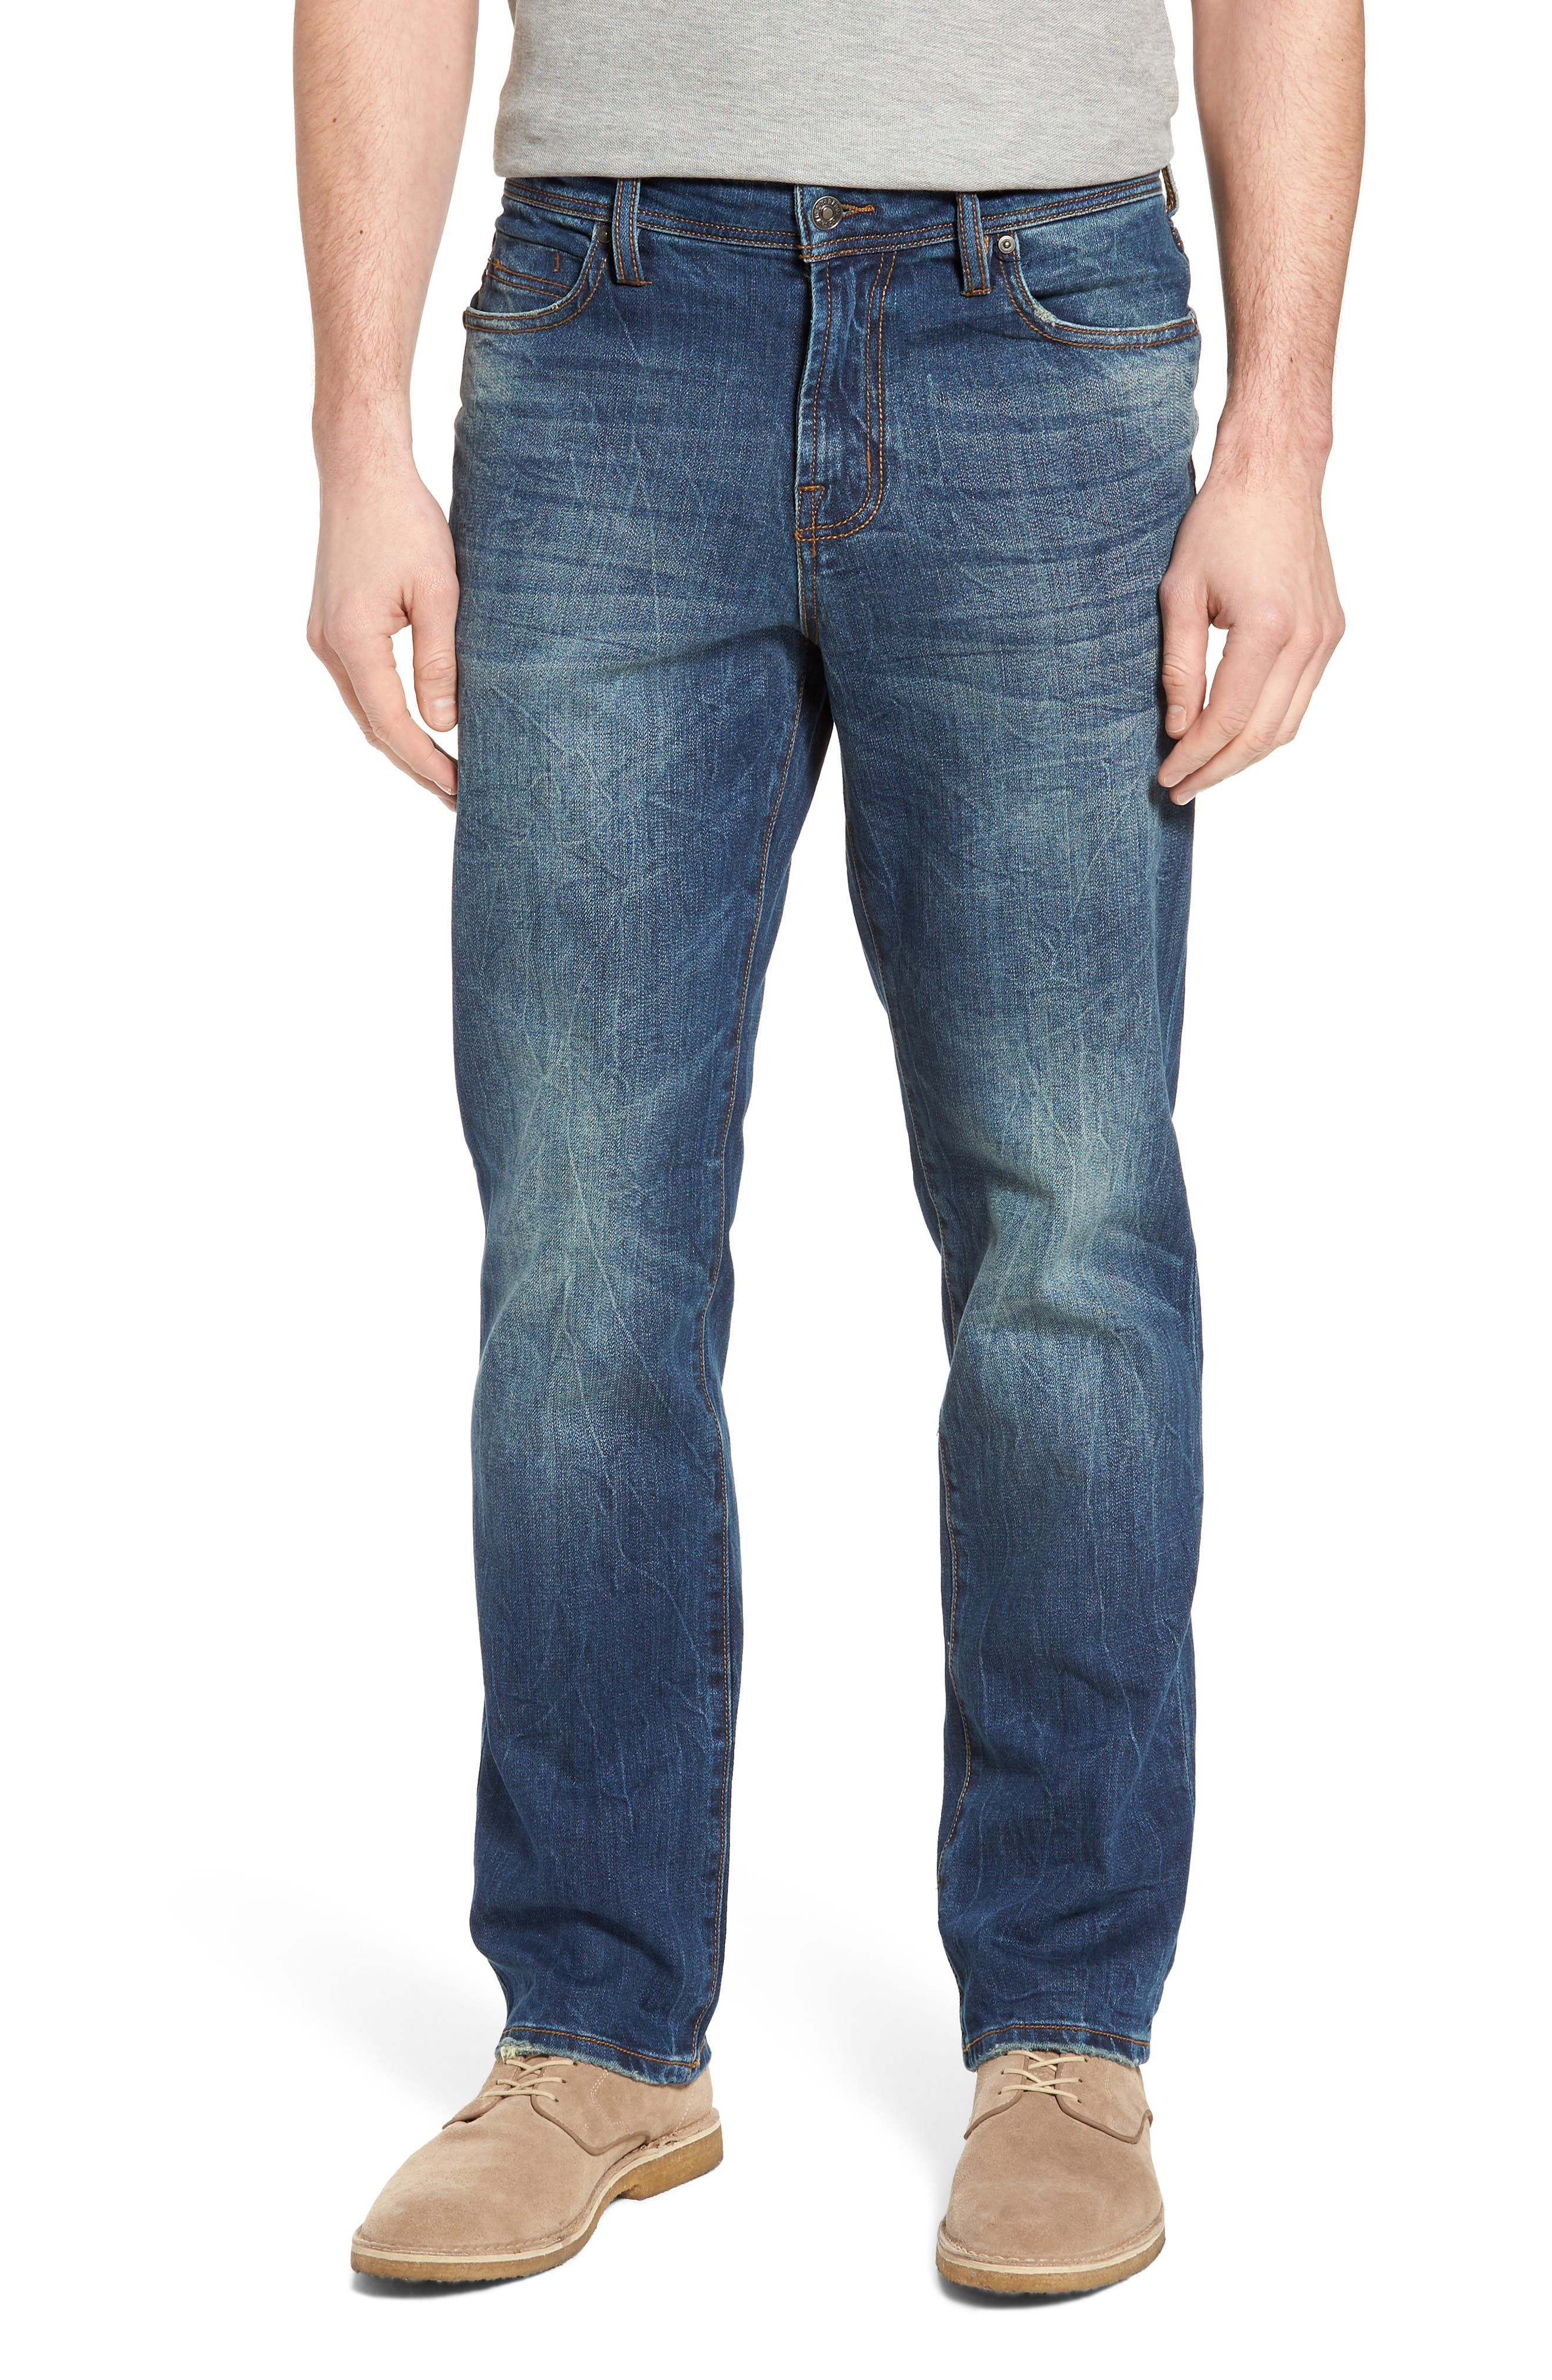 Jeans Co. Regent Relaxed Fit Jeans,                             Main thumbnail 1, color,                             Odessa Vintage Medium